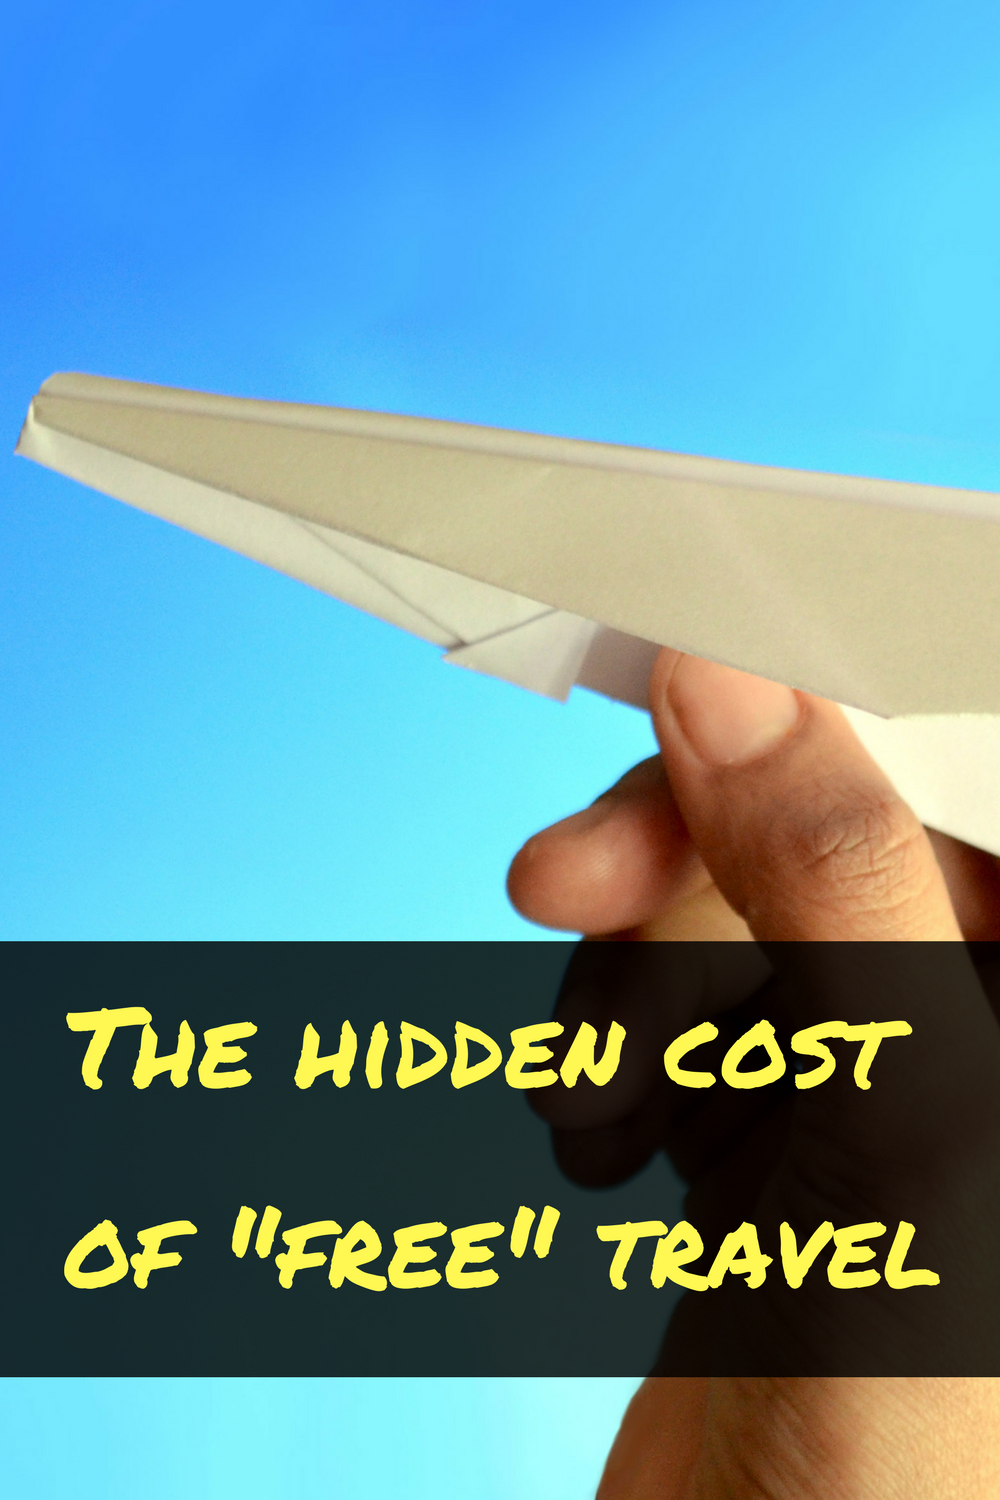 Travel rewards are frugal -- but the costs still add up!